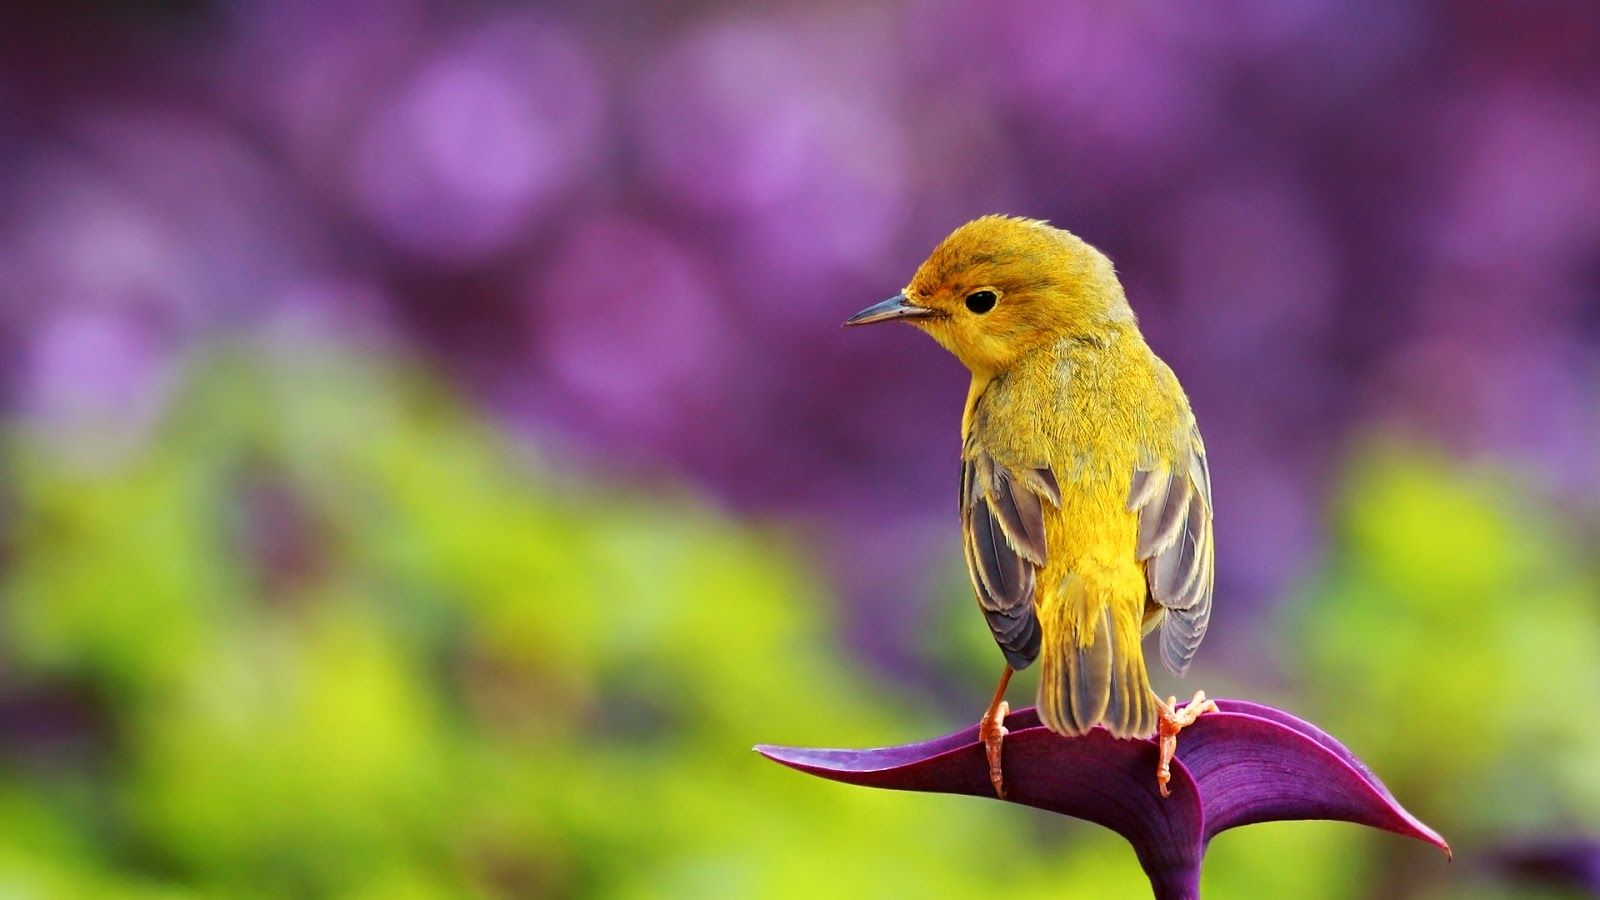 Beautiful HD wallpapers : Birds Wallpaper HD 1080P | All ...